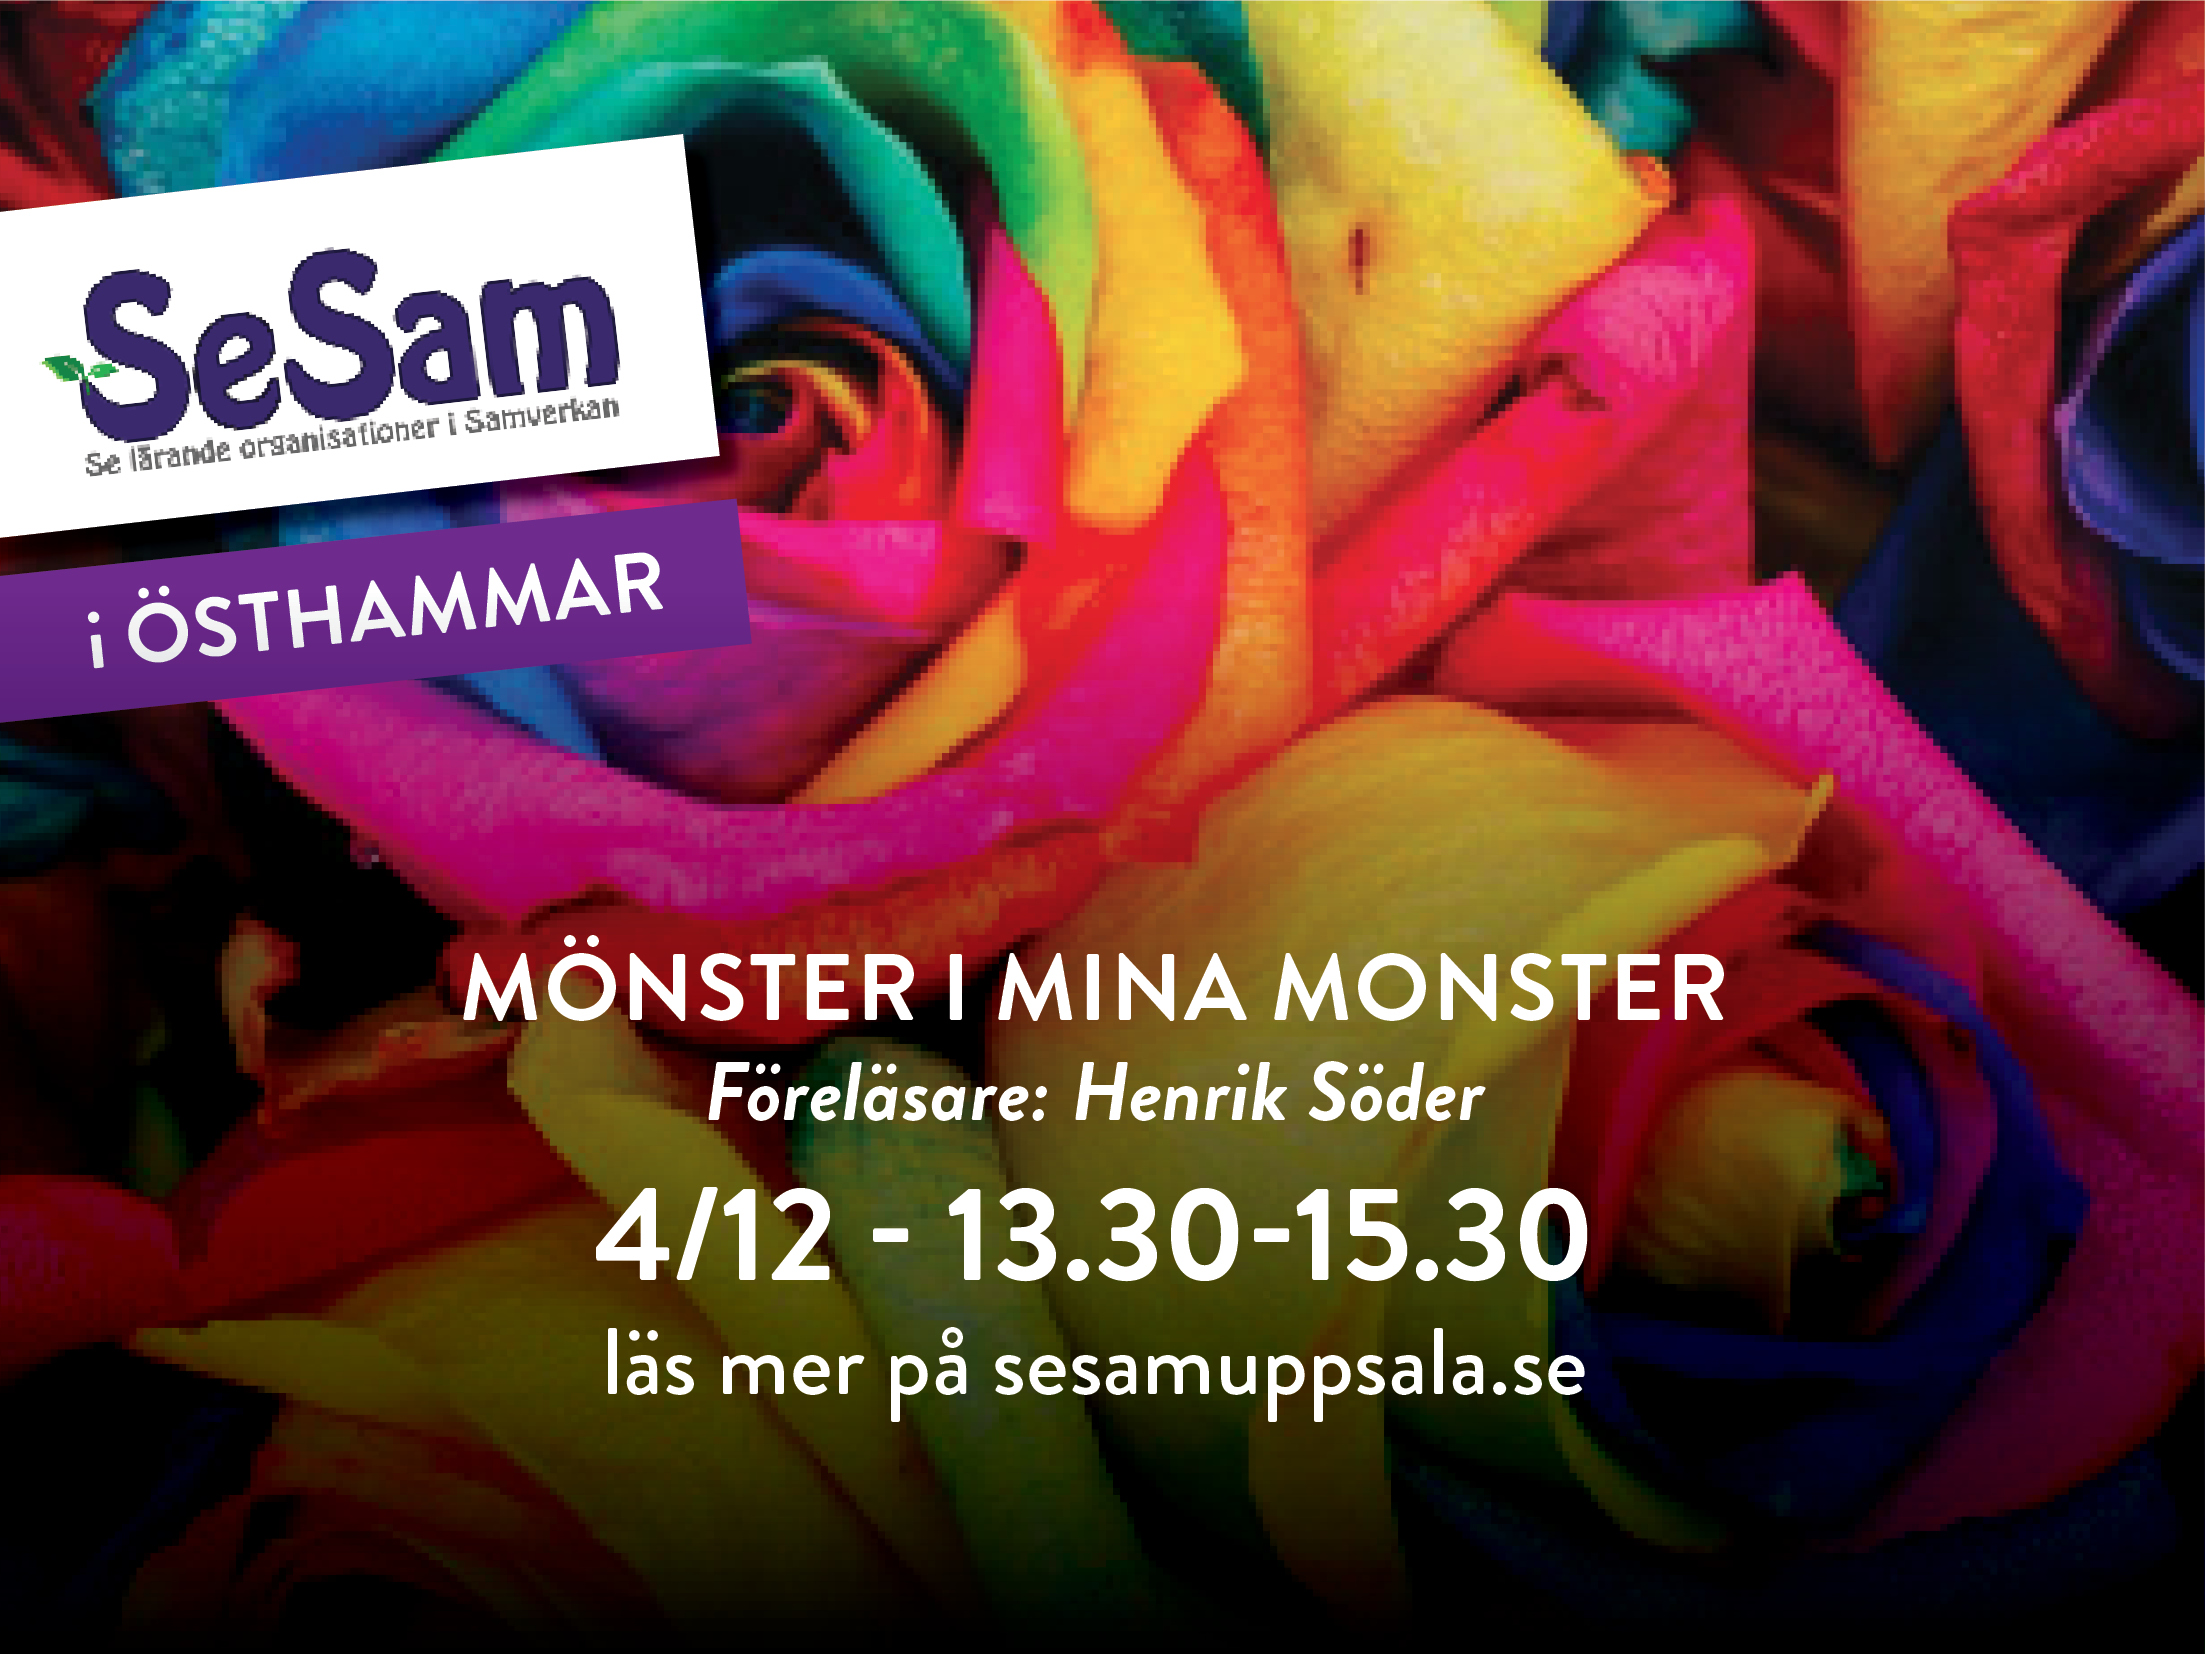 Östhammar 4 december – Mönster i mina monster